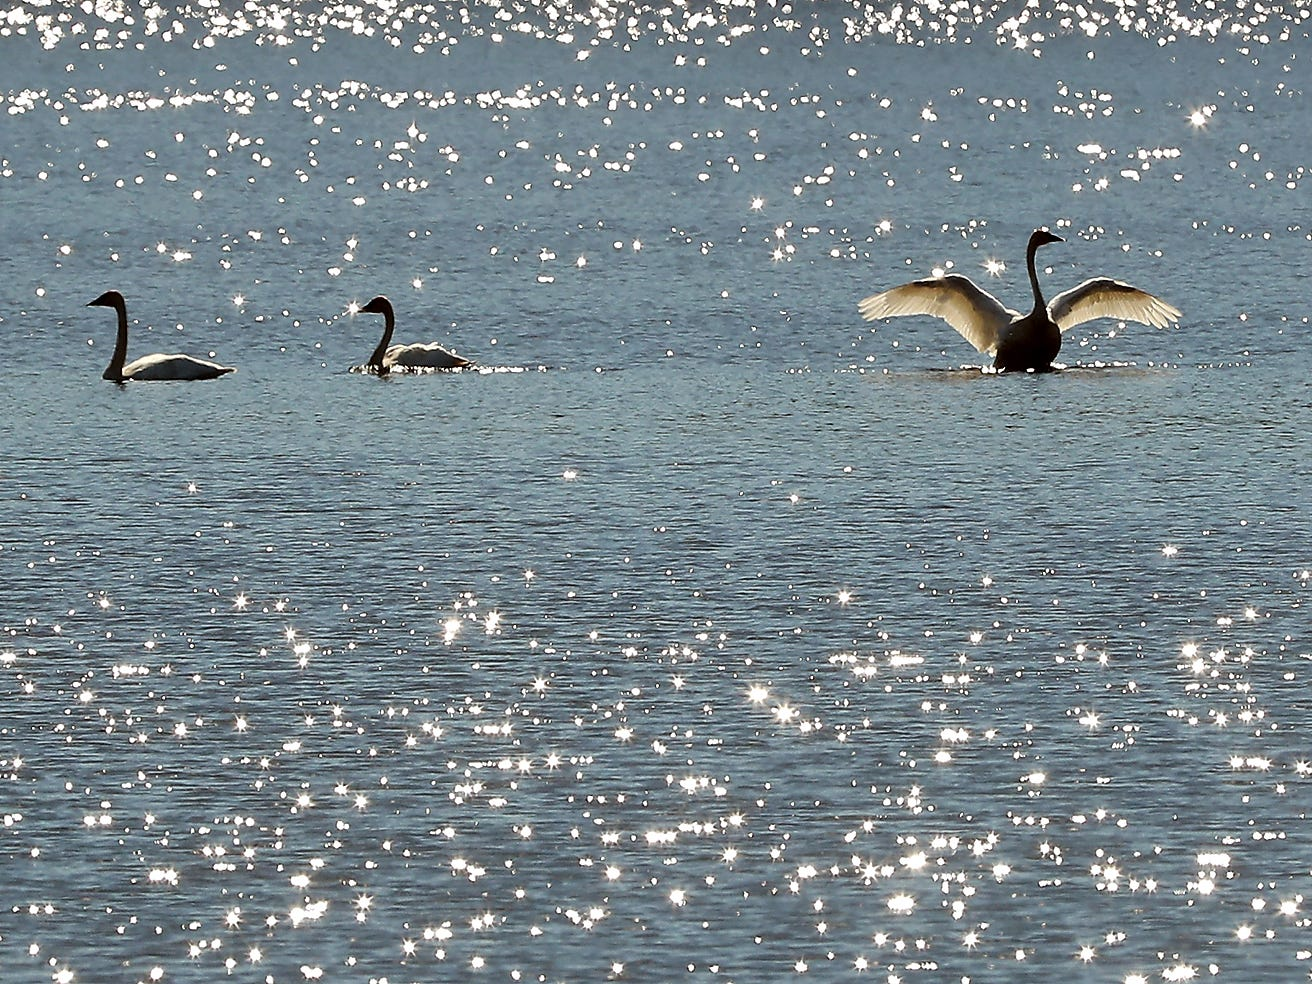 A flock of swans are silhouetted against the glimmering water of Long Lake in Port Orchard on Monday March 18, 2019.